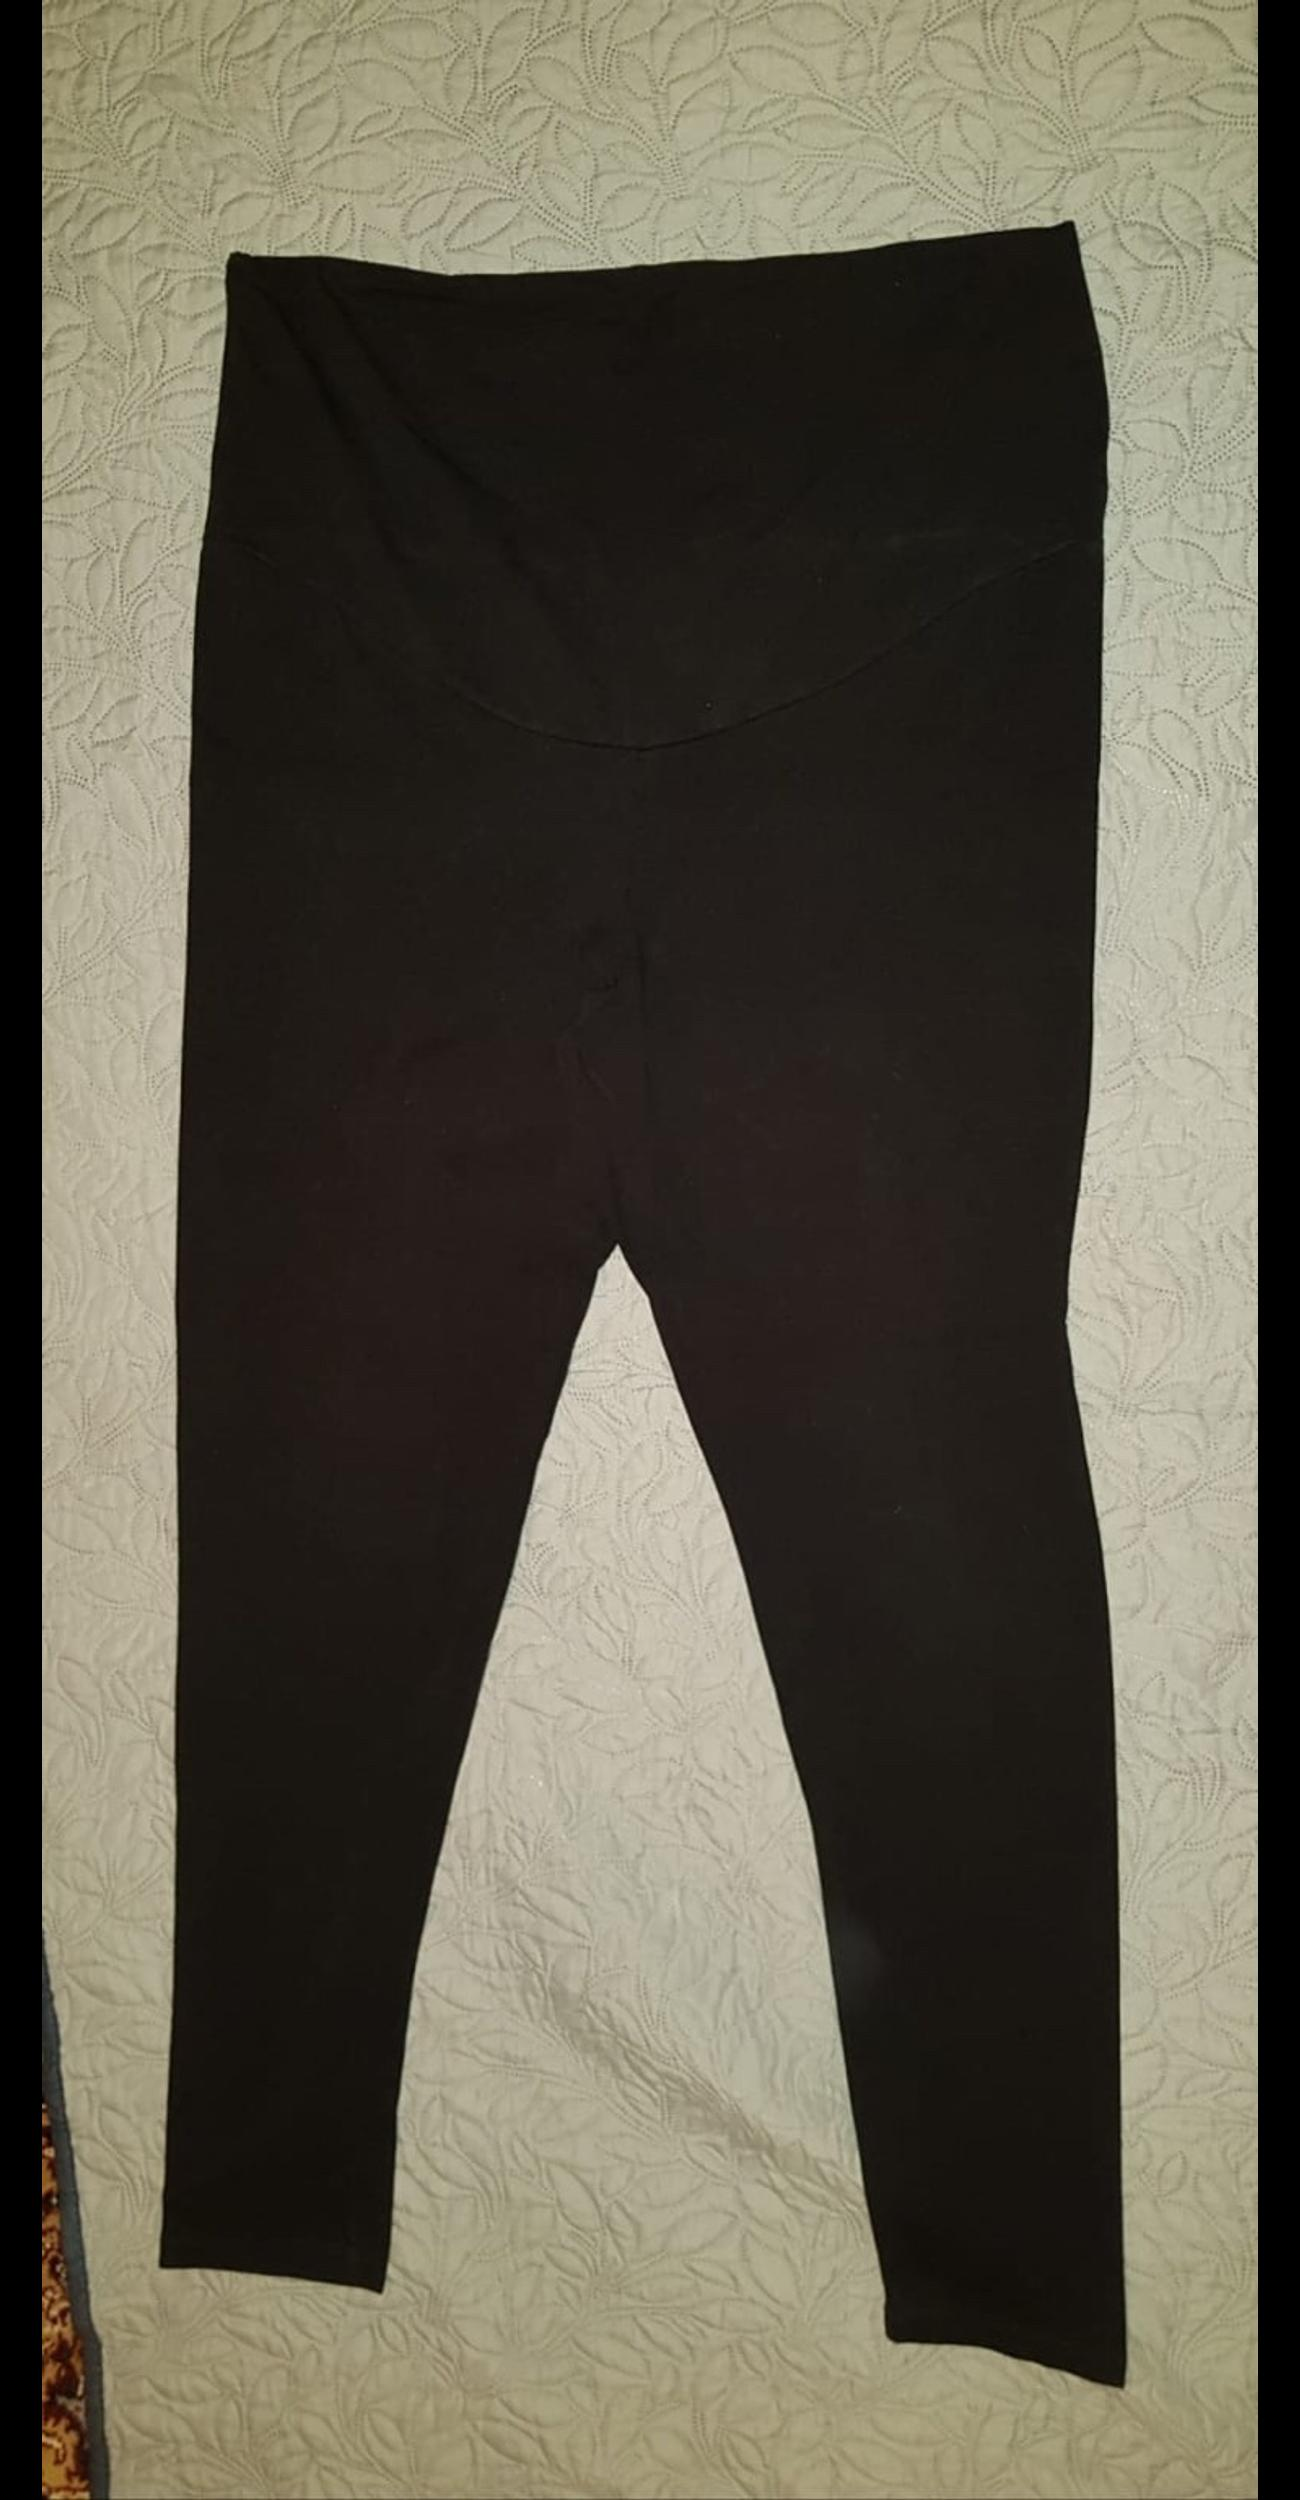 a32db29112ba2 Blooming marvellous yoga style pants in GL2 Gloucester for £5.00 for ...